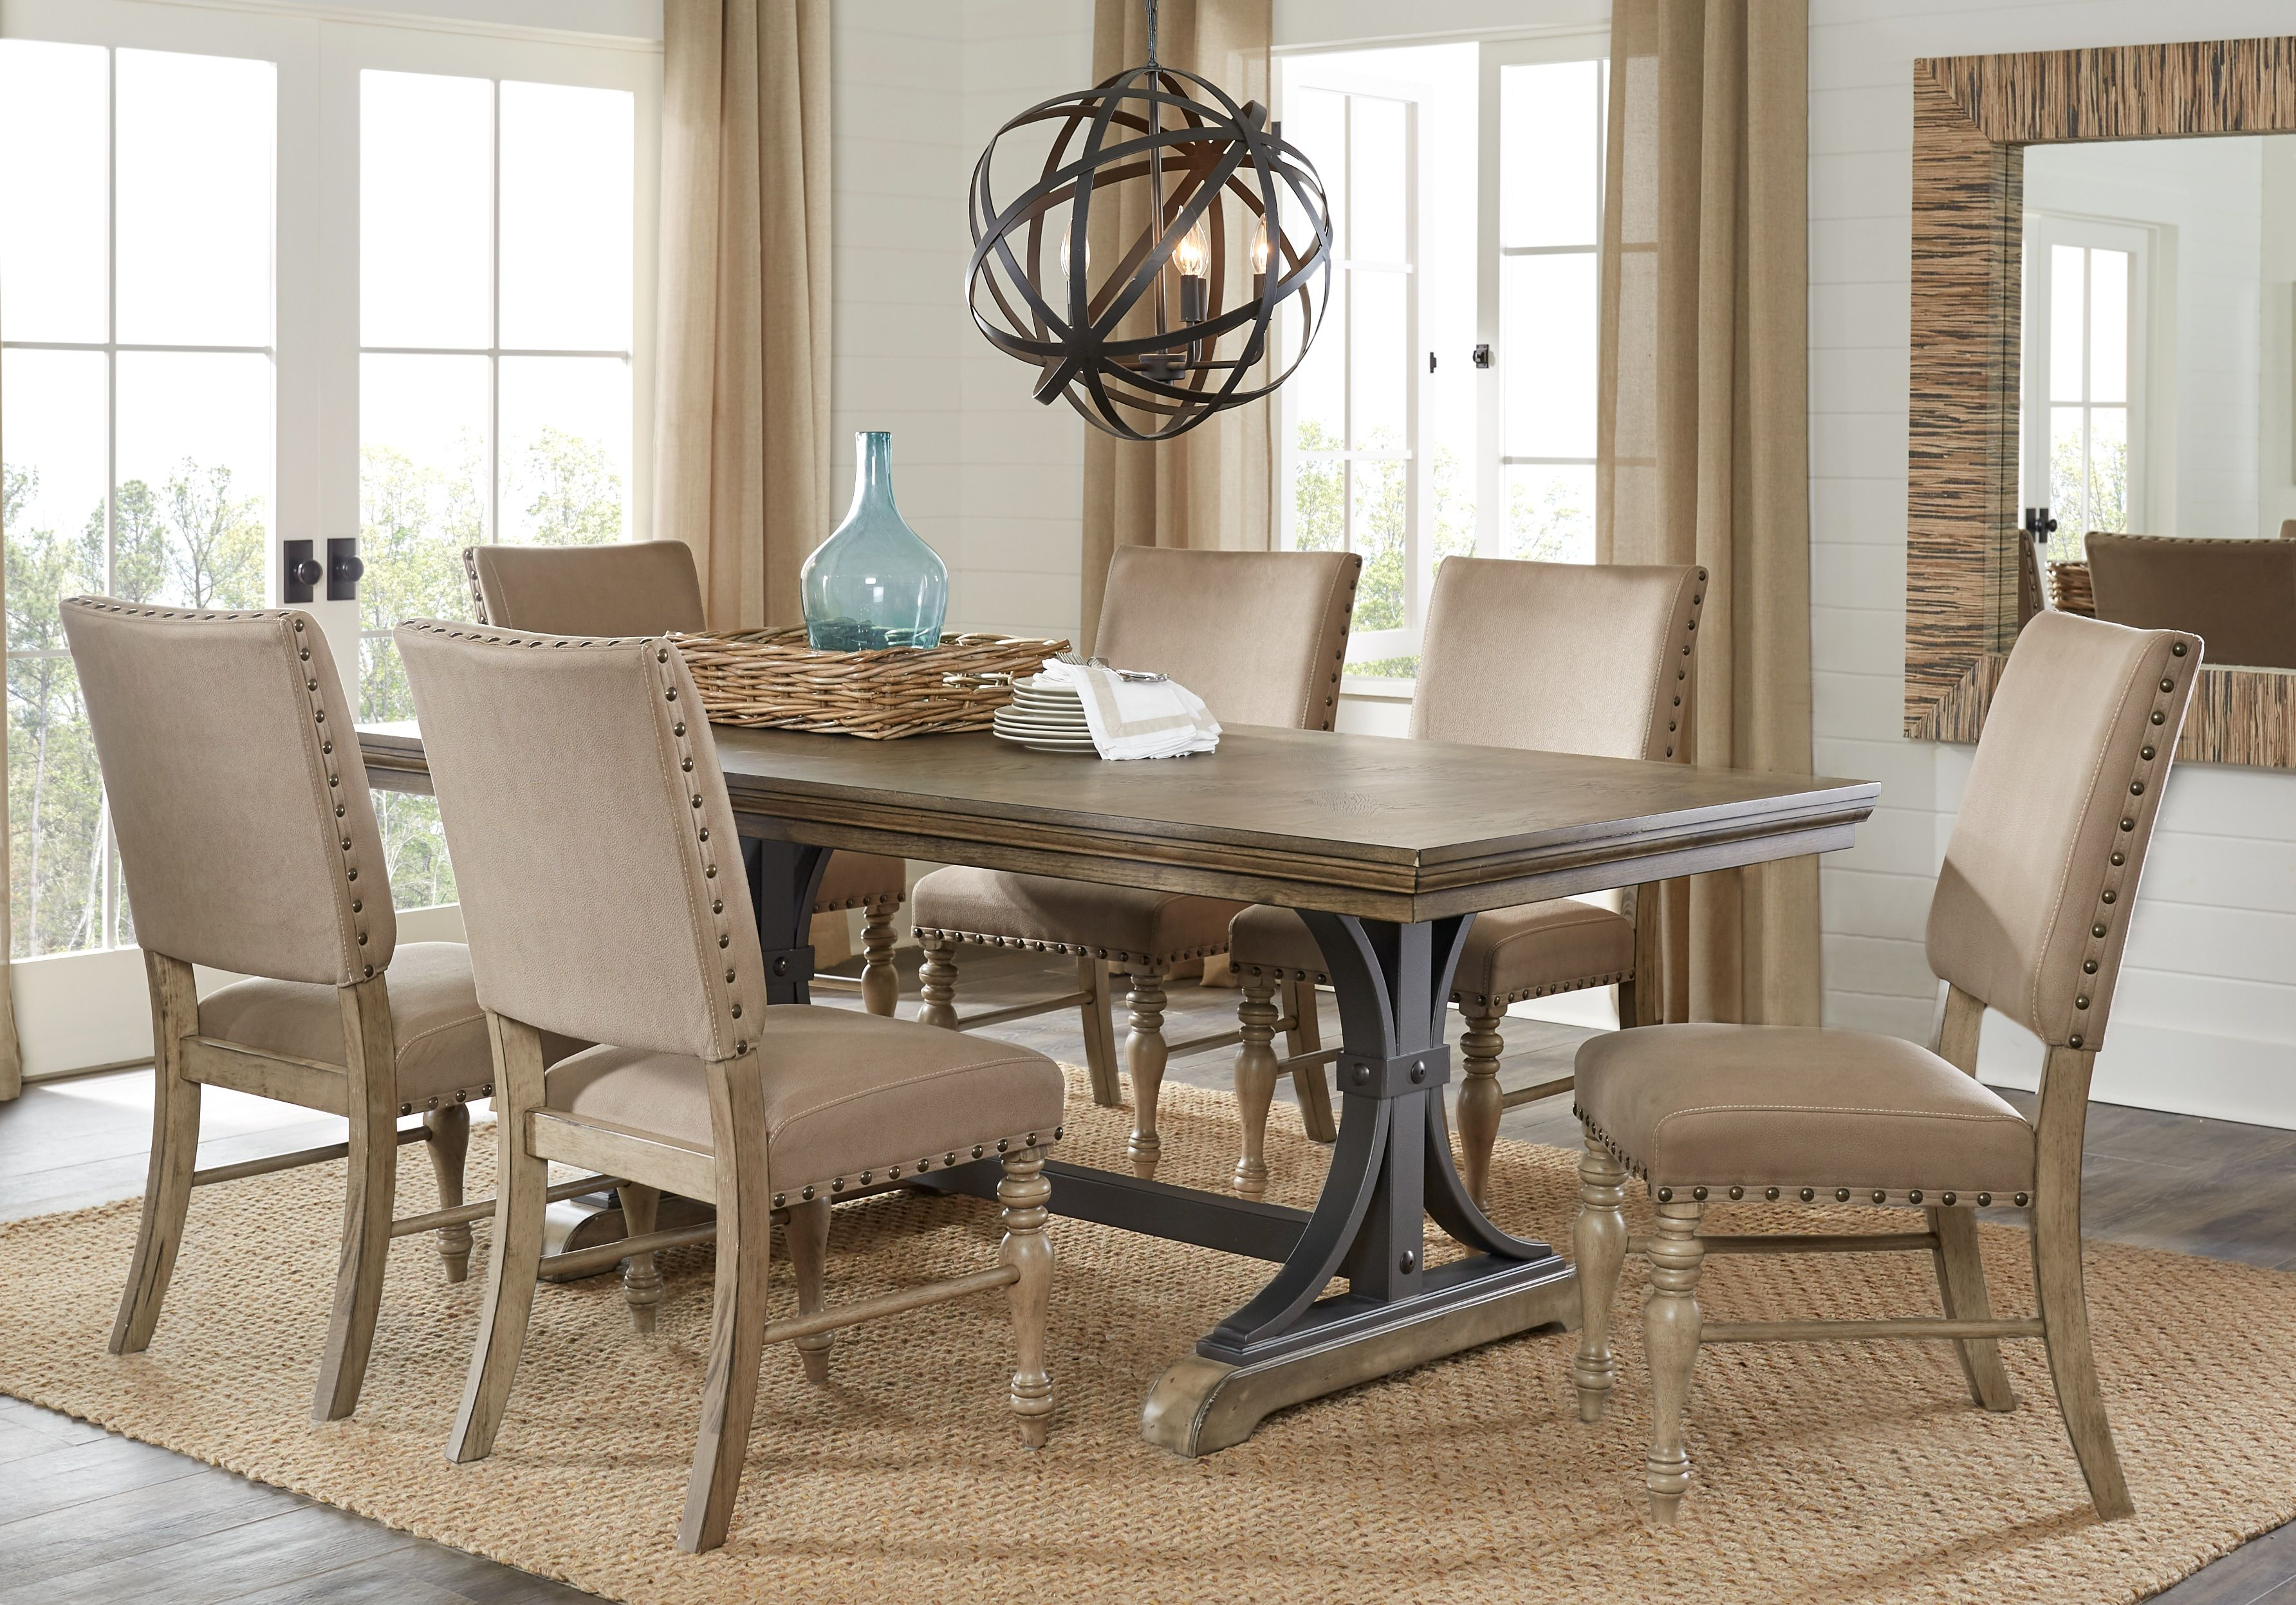 Sierra Vista Driftwood 5 Pc Rectangle Dining Set Dining Room